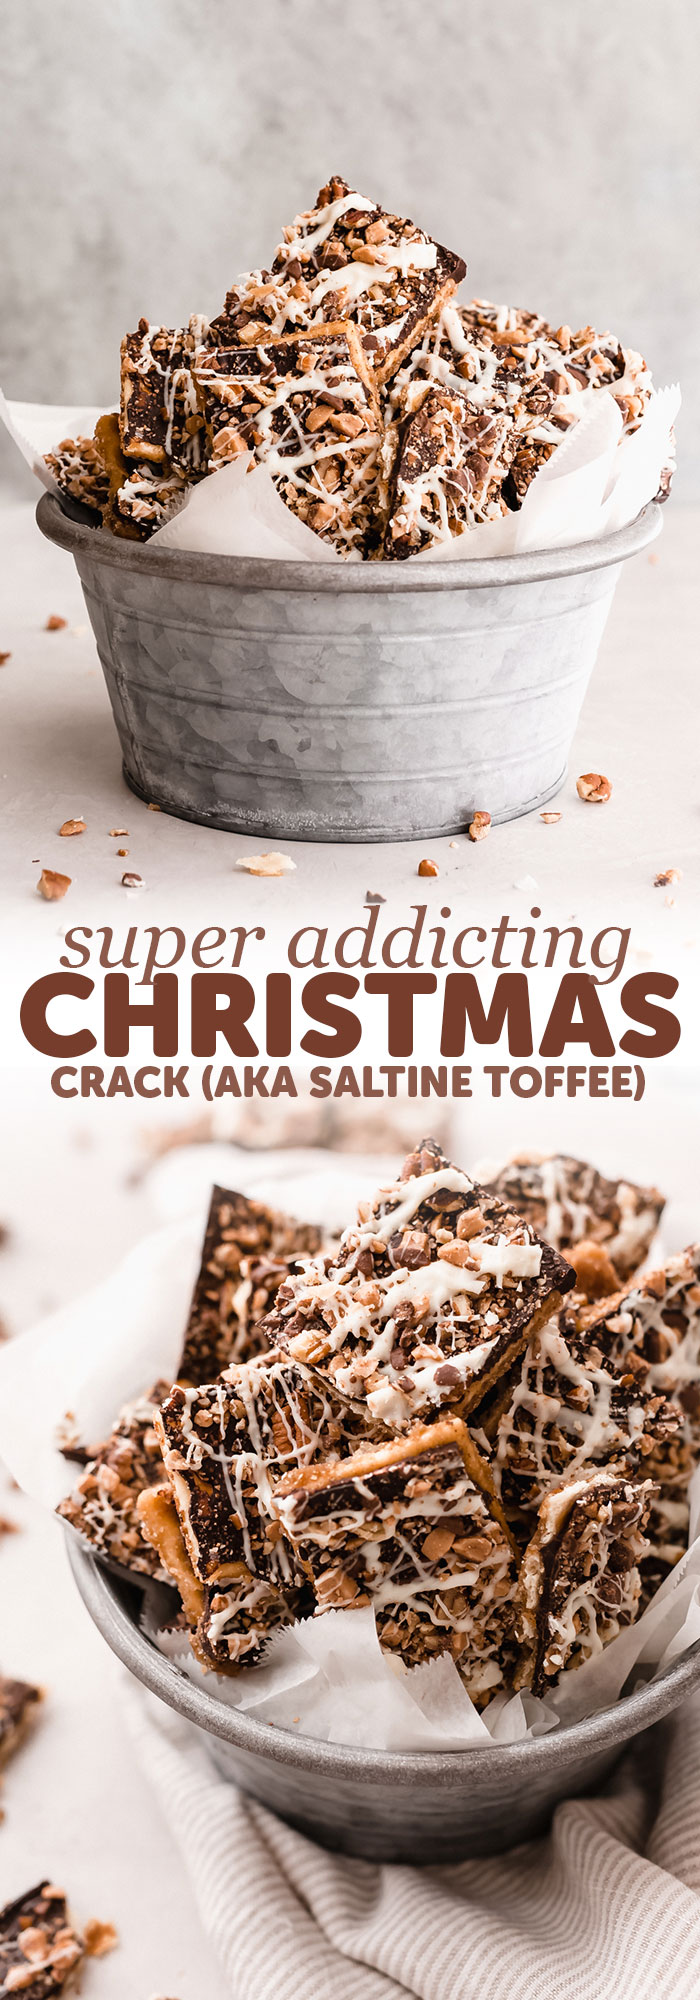 Addicting Christmas Crack (Saltine Toffee Bark) - Learn how to make a grown up version of the famous saltine toffee! I like to use ingredients that help cut through some of that sweetness. Guaranteed to be addicting! #saltinetoffee #saltinetoffeebark #christmasfood #christmascrack #holiday #toffeebark | Littlespicejar.com